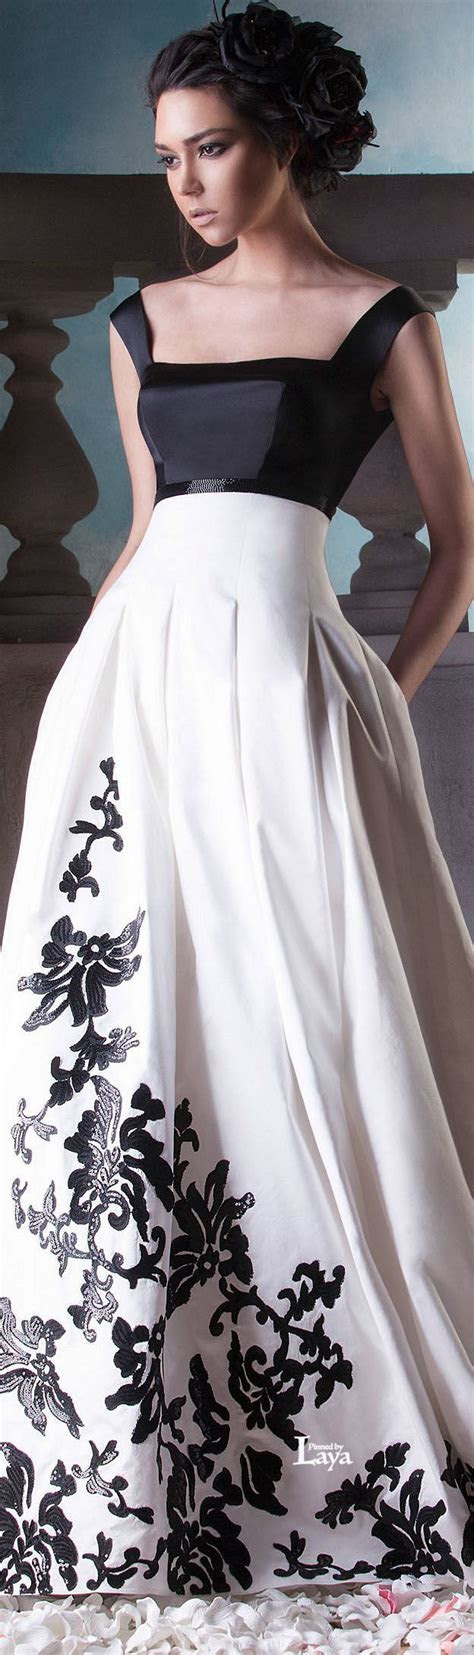 Black And White Evening Dress   You can find this at